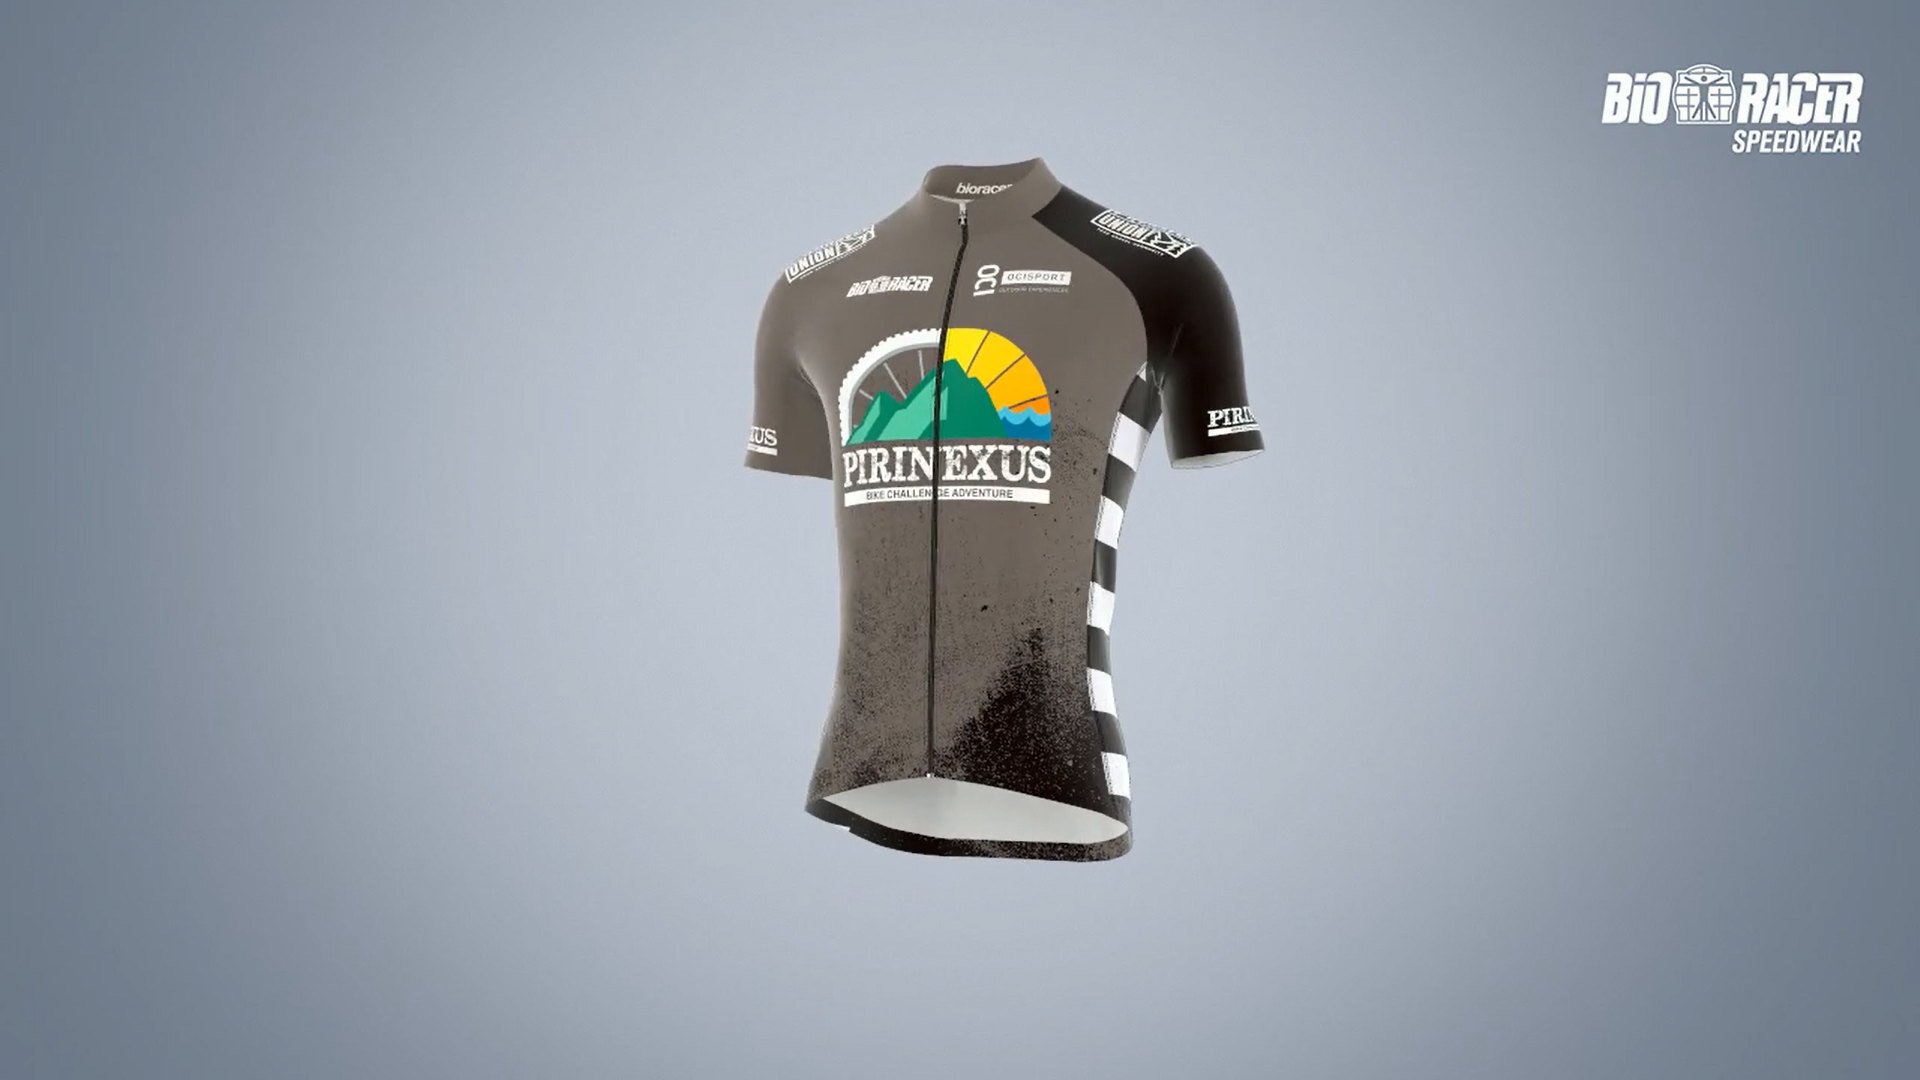 Bioracer presents the jersey of the Pirinexus Challenge